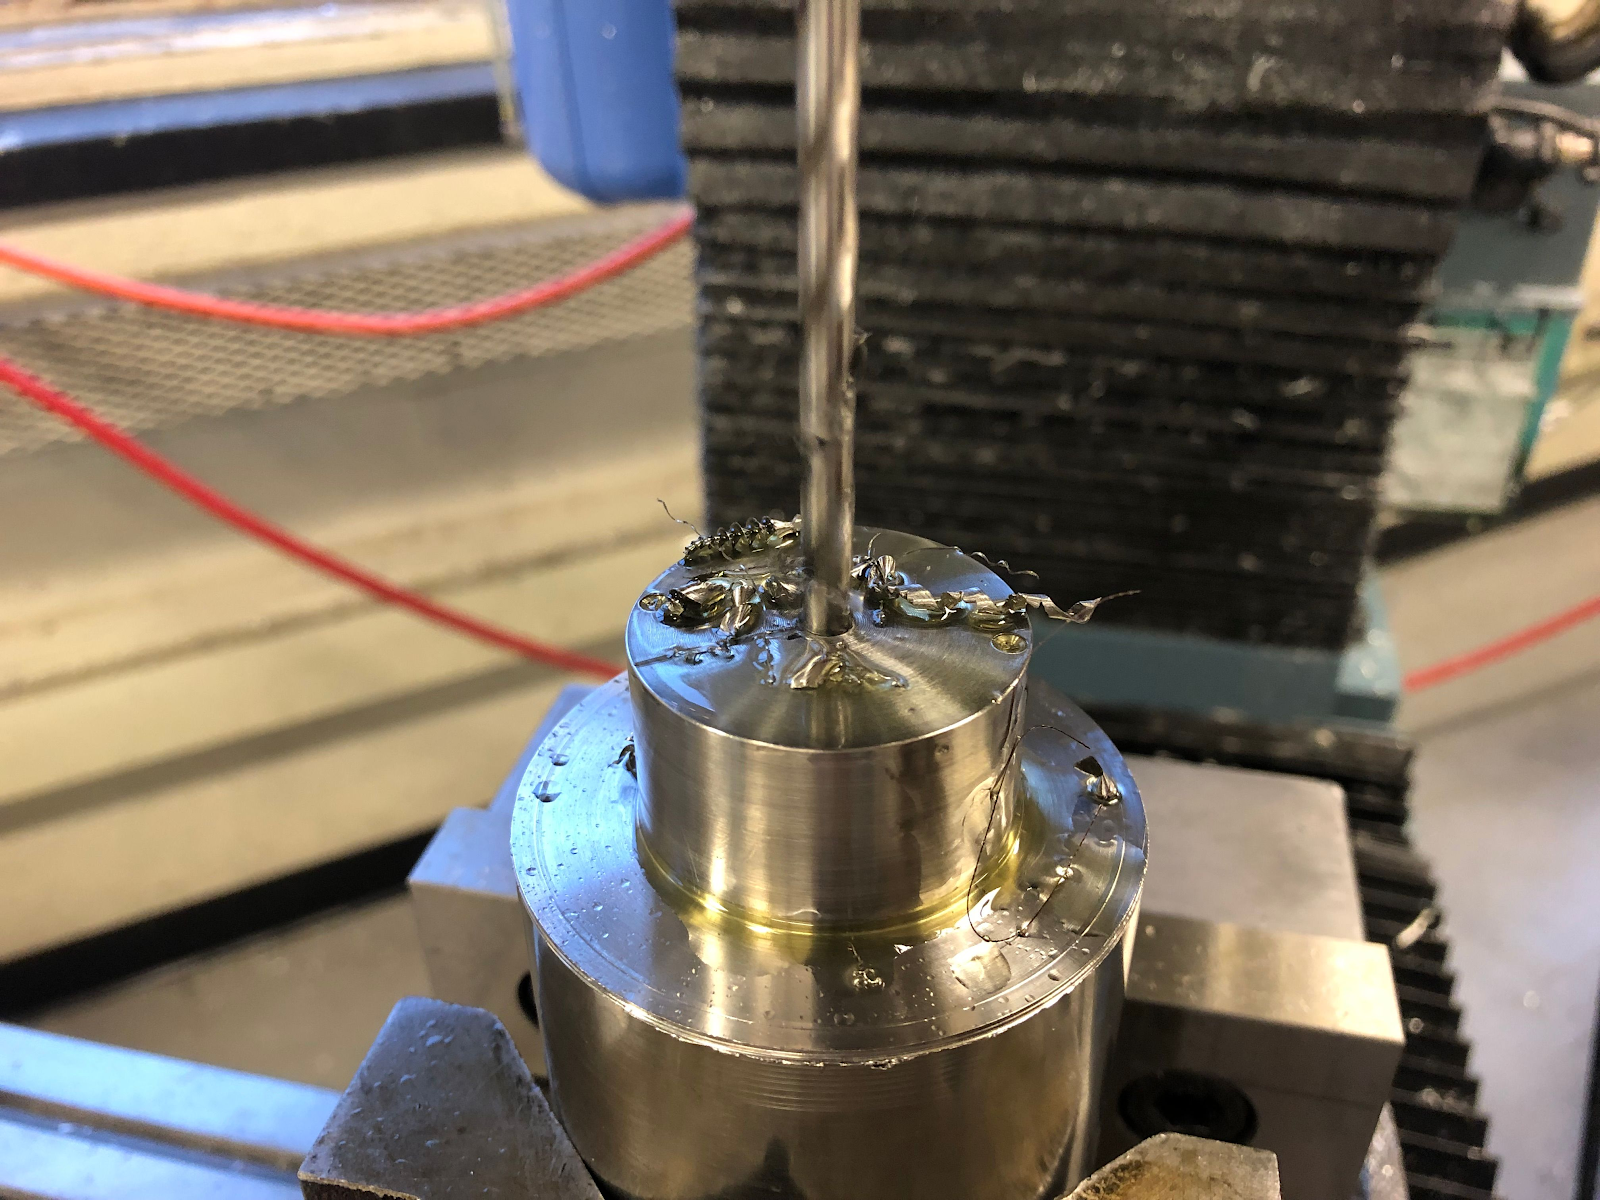 machining a Structures part